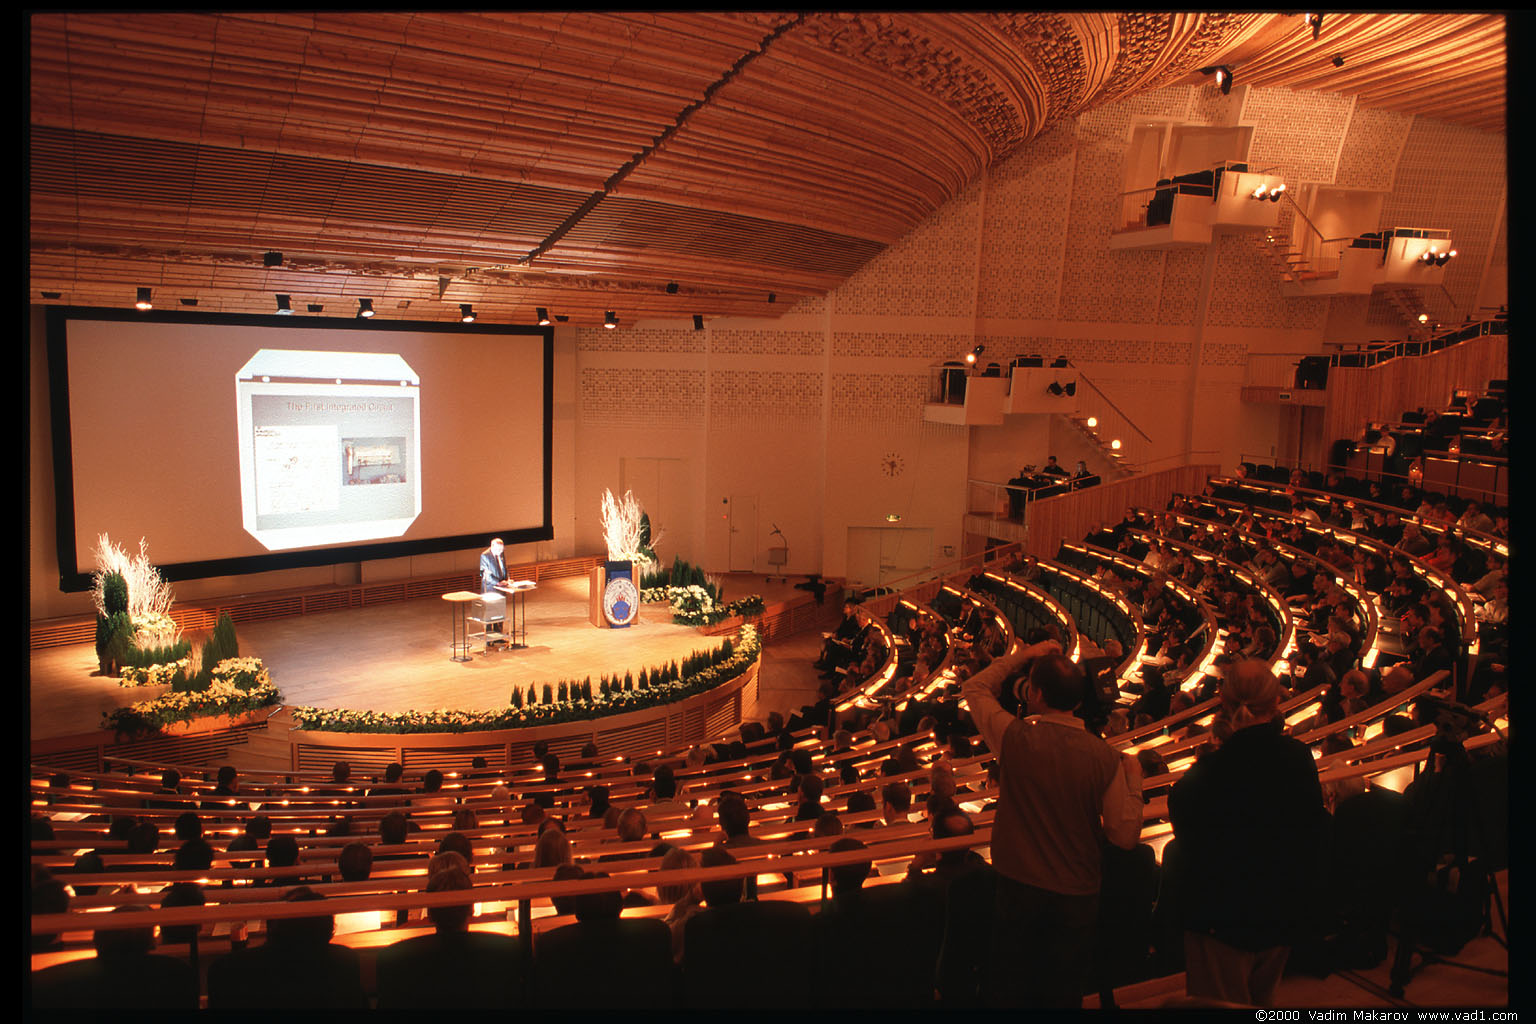 Photo: Jack S. Kilby's Nobel Lecture in Aula Magna